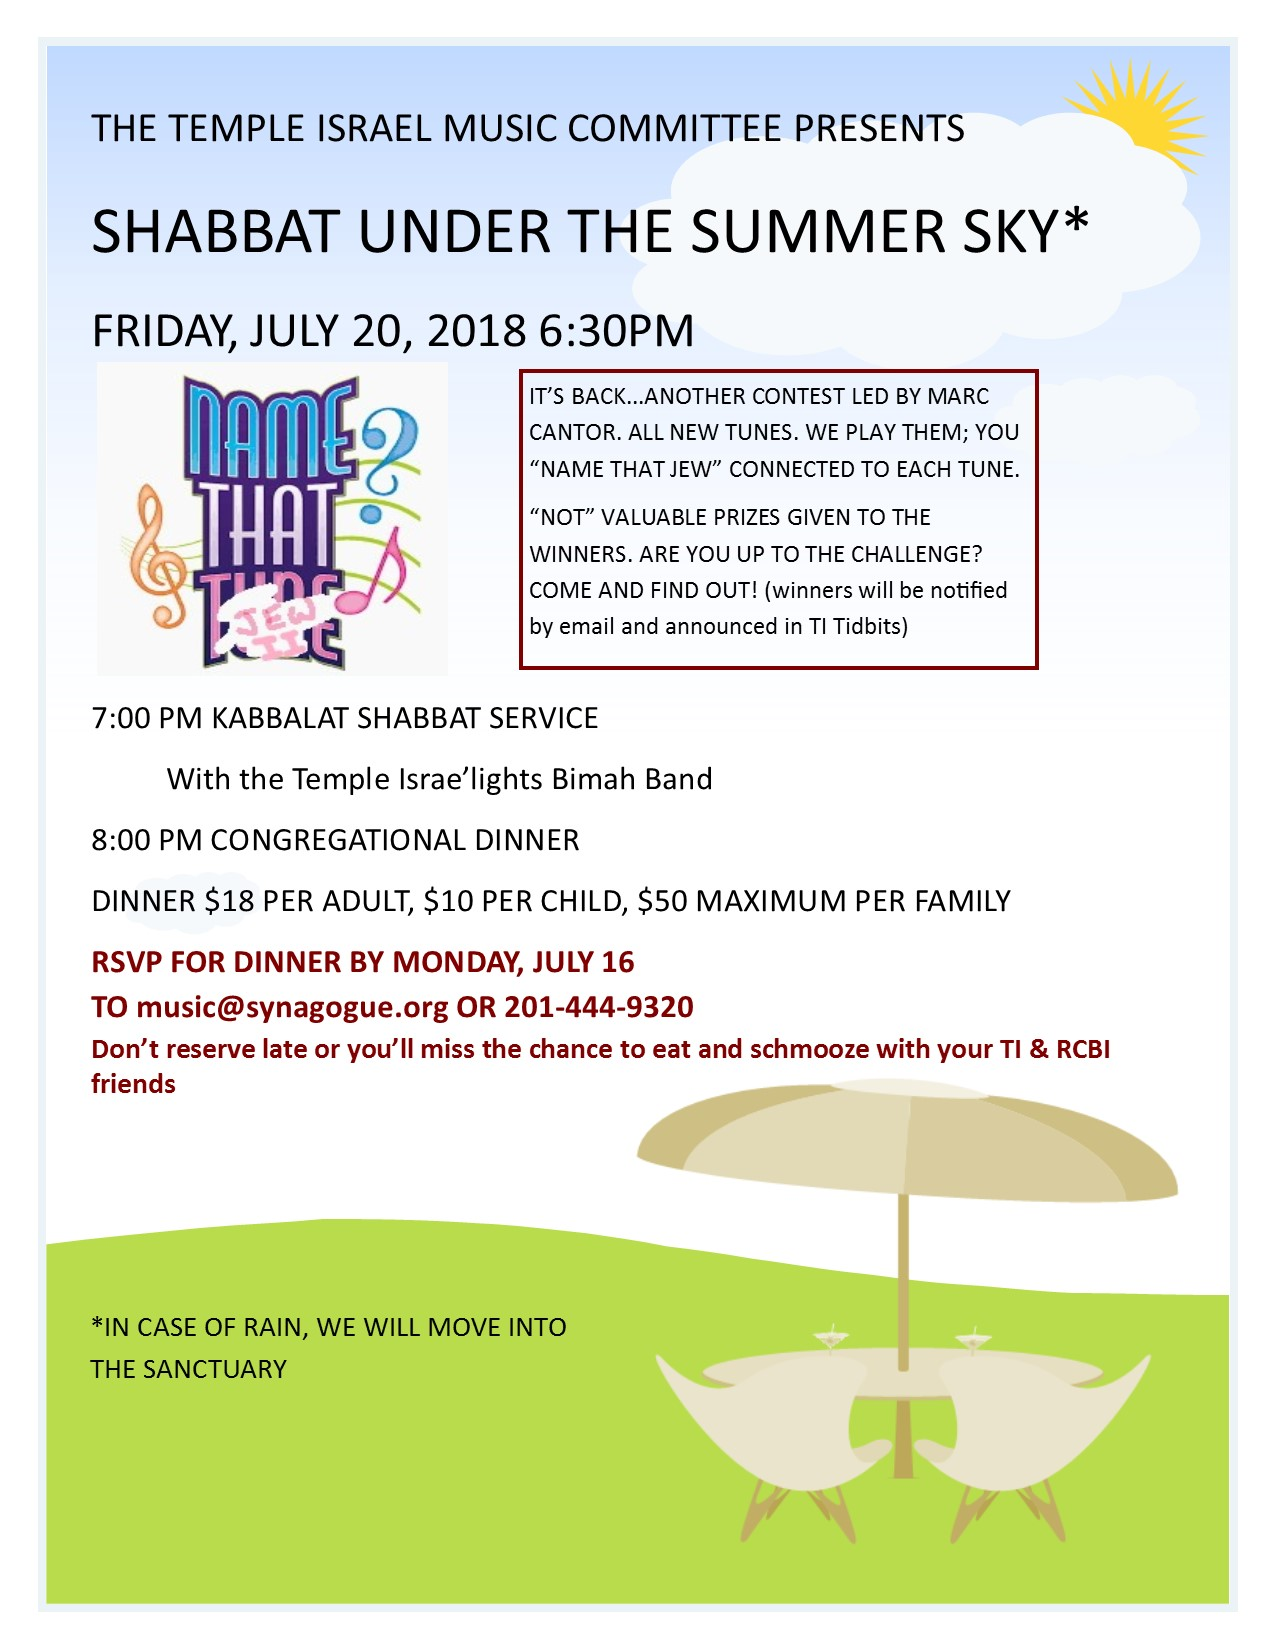 Shabbat Under the Summer Sky